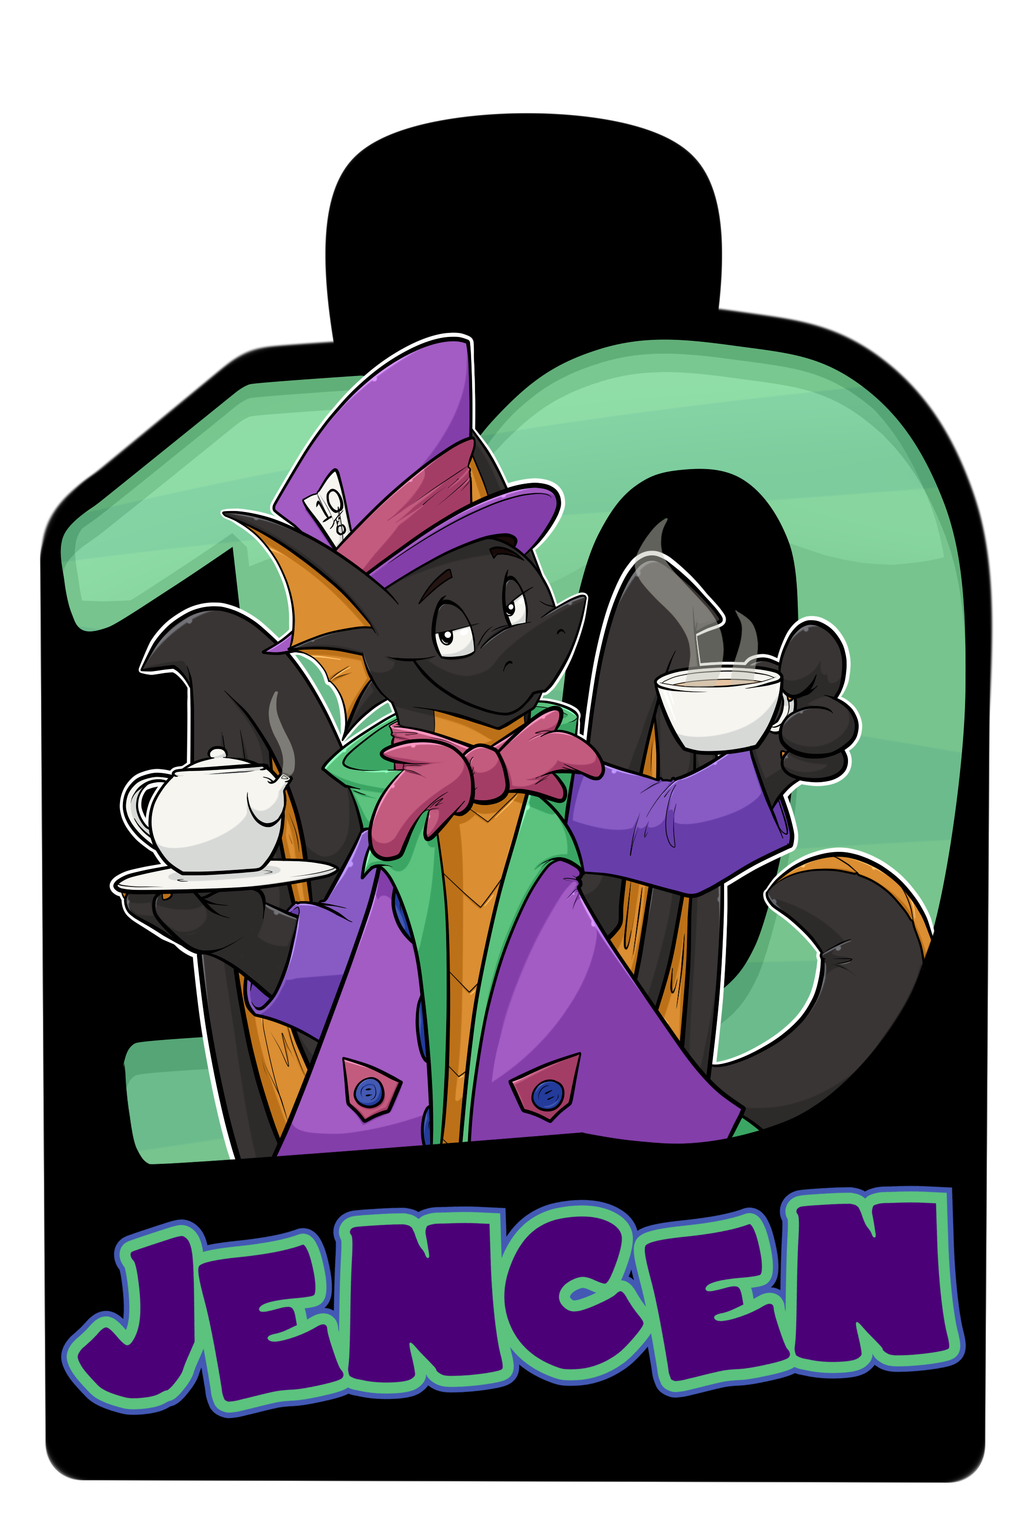 Confuzzled 2017 Badges - Jencen (7)